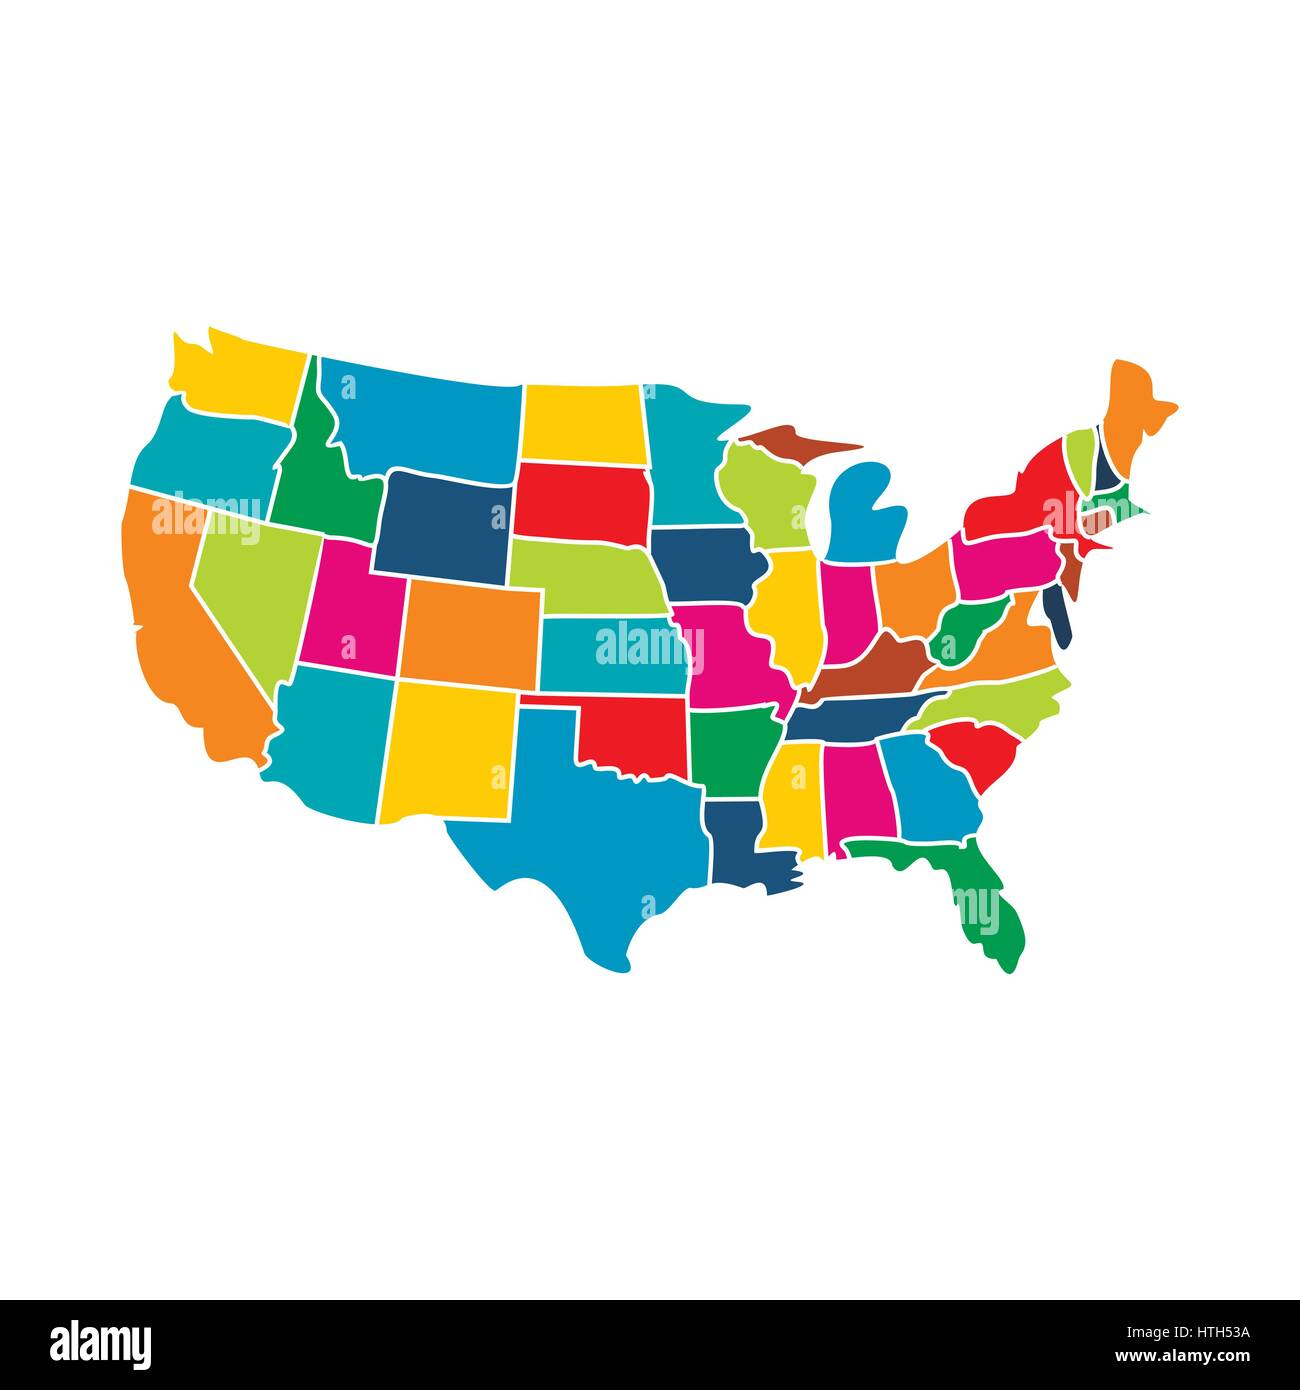 Colorful Map Of Usa.Colorful Usa Map With States Icon Stock Vector Art Illustration